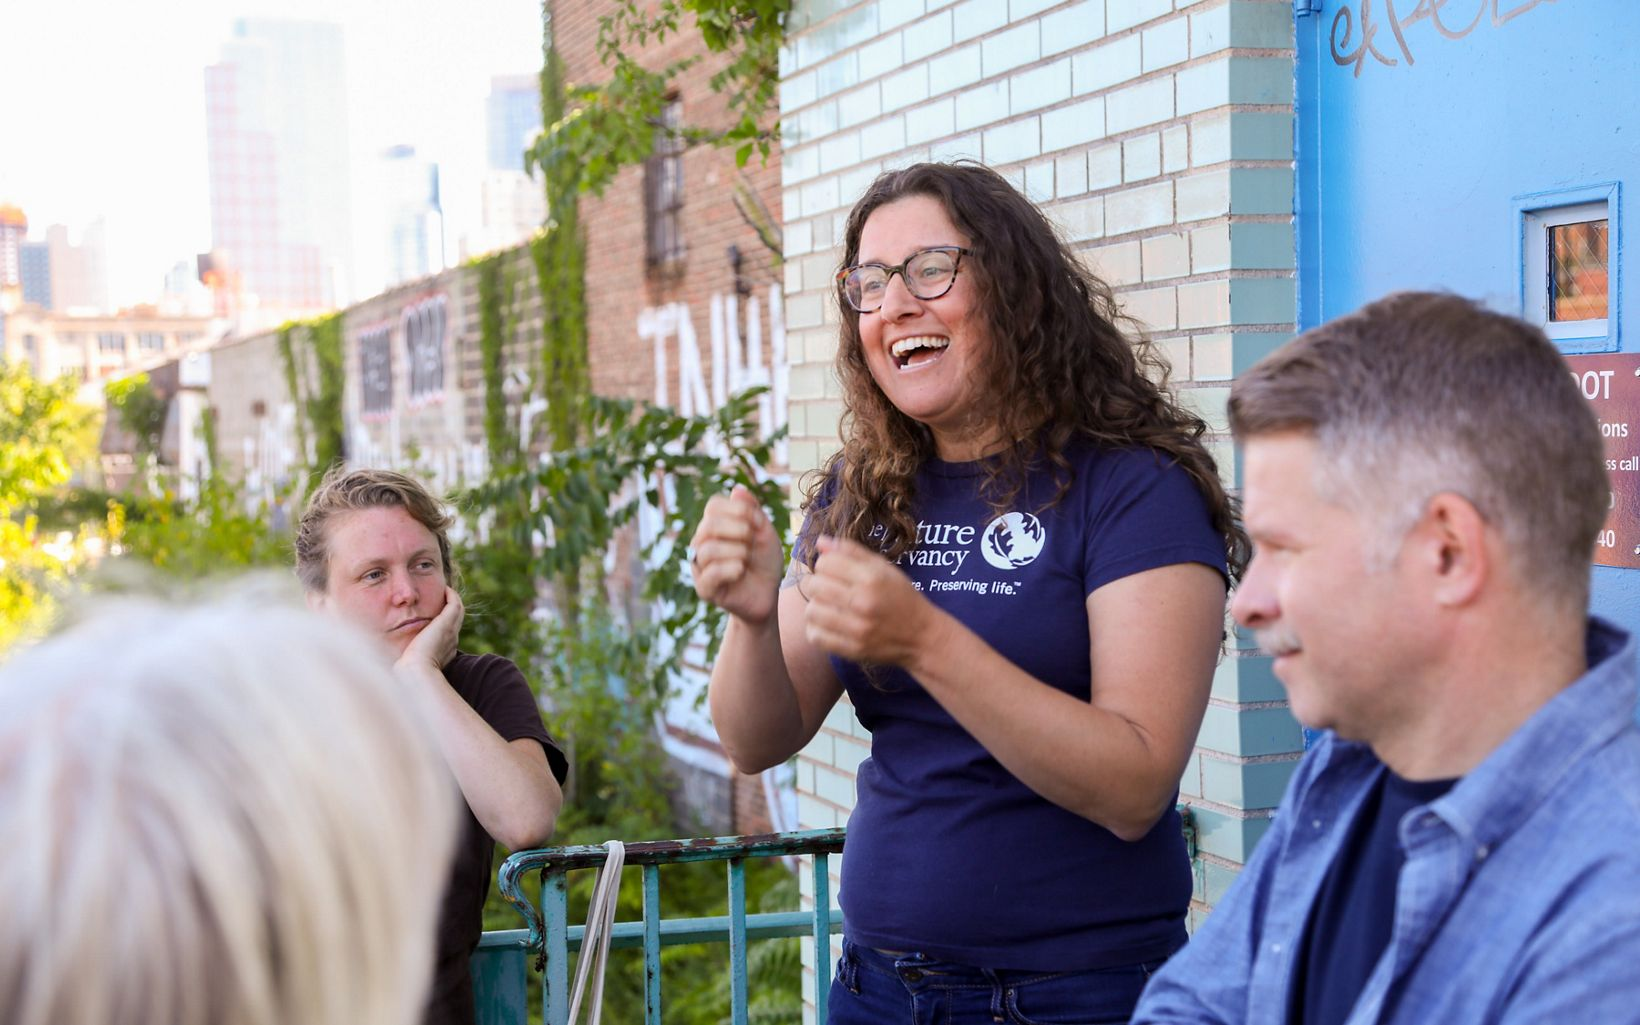 A woman wearing a blue t-shirt with The Nature Conservancy name and logo on it talks with a crowd. The woman is at the right side of the image, has brown curly hair, and wears glasses.